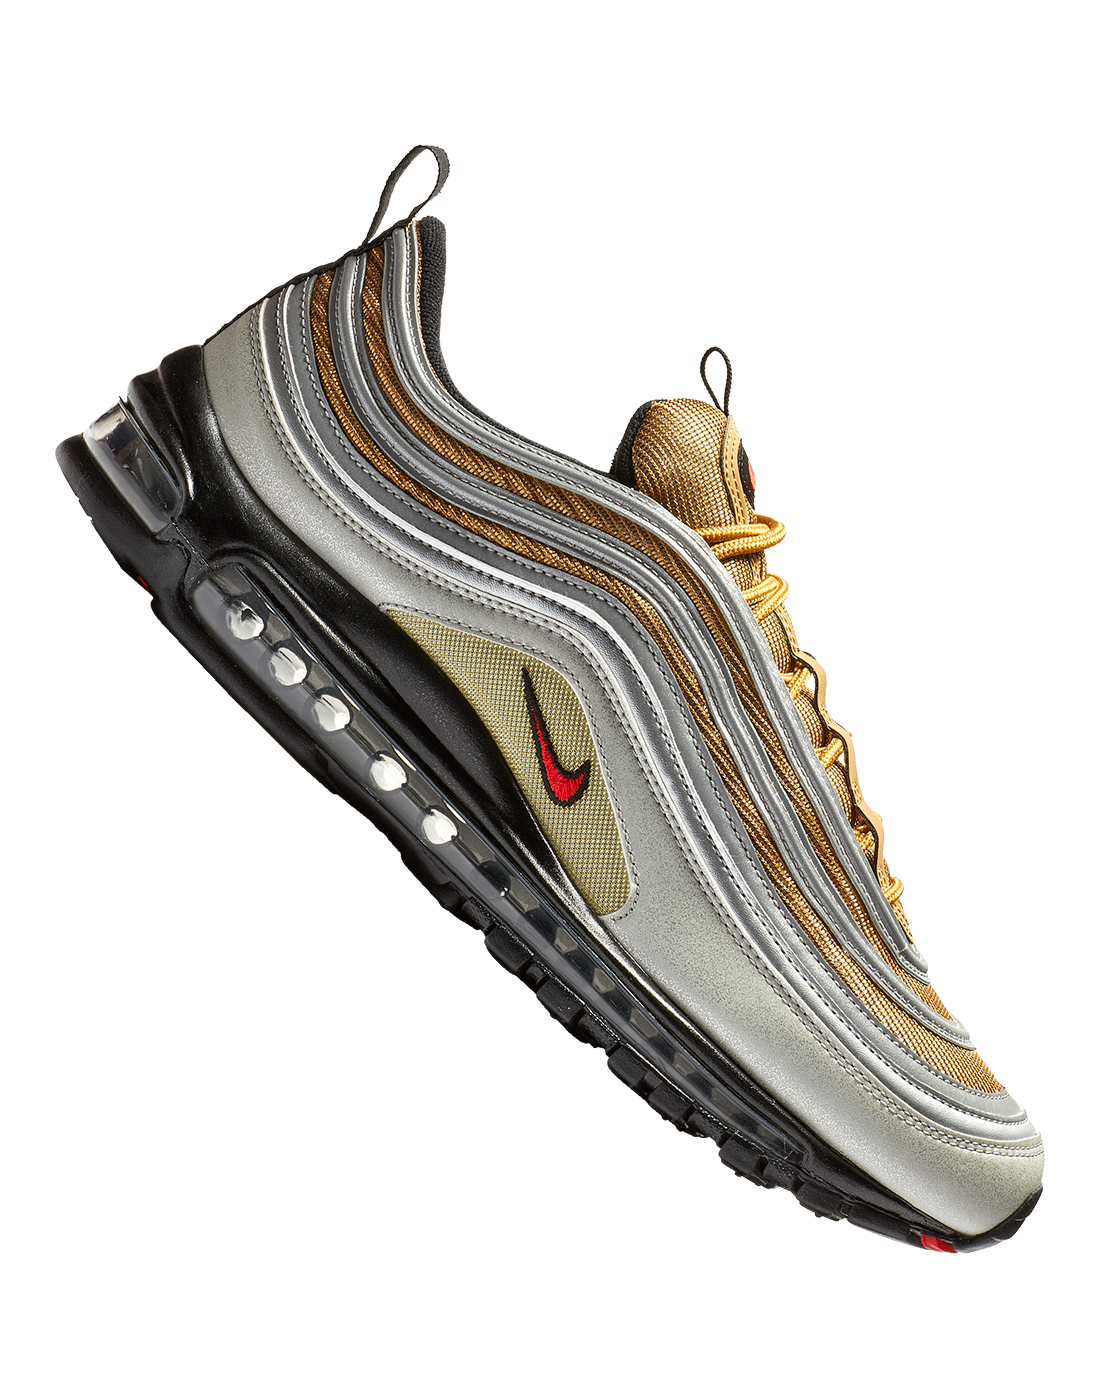 795b0a65 Men's Gold & Silver Nike Air Max 97 | Life Style Sports